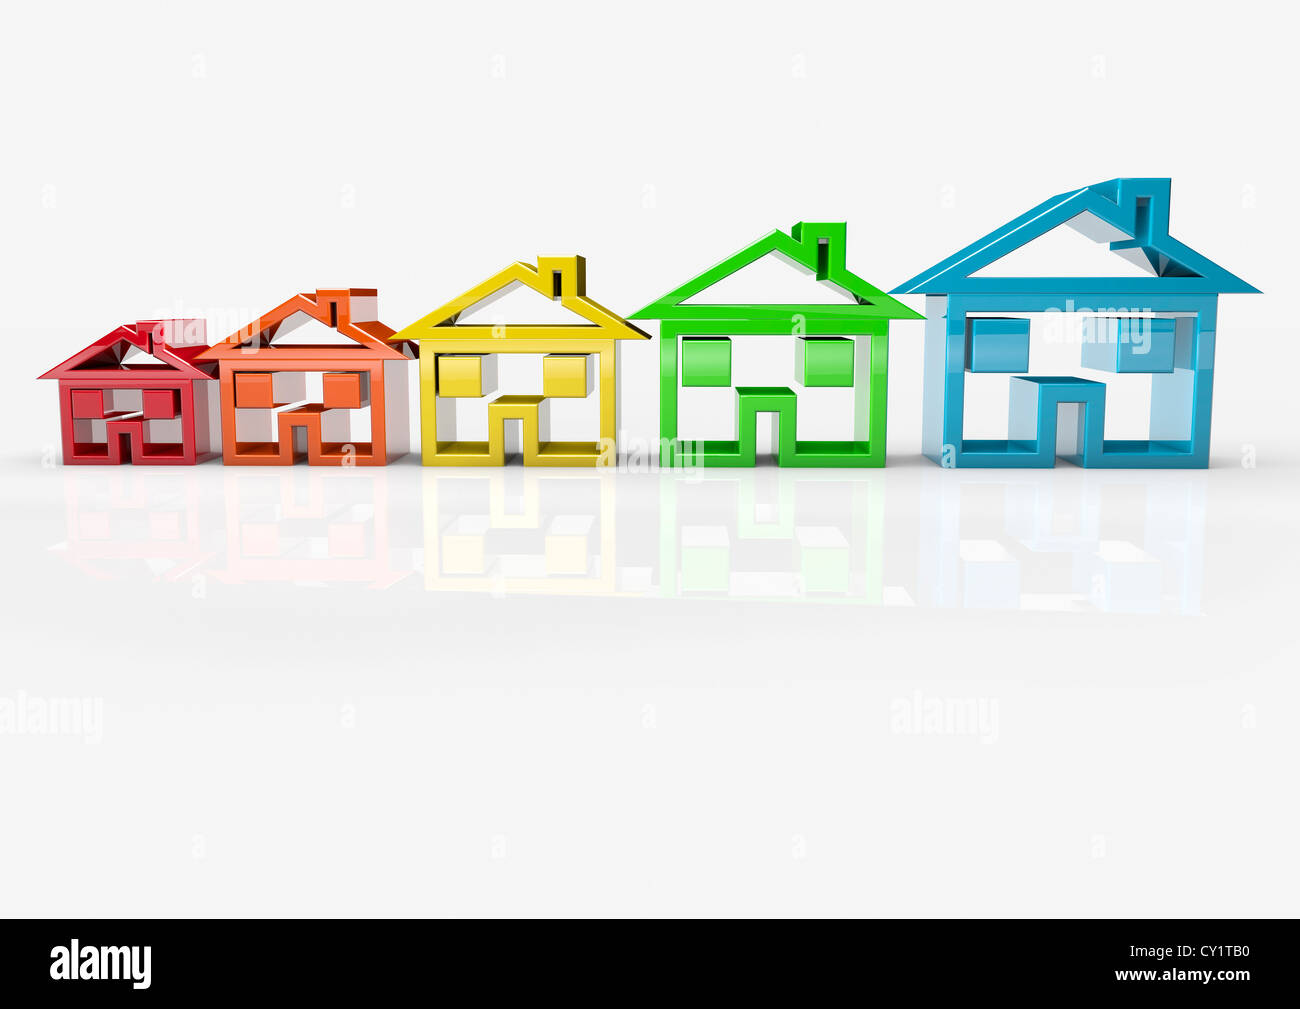 3 Render Of Colourful House Symbols Representing The Property Market